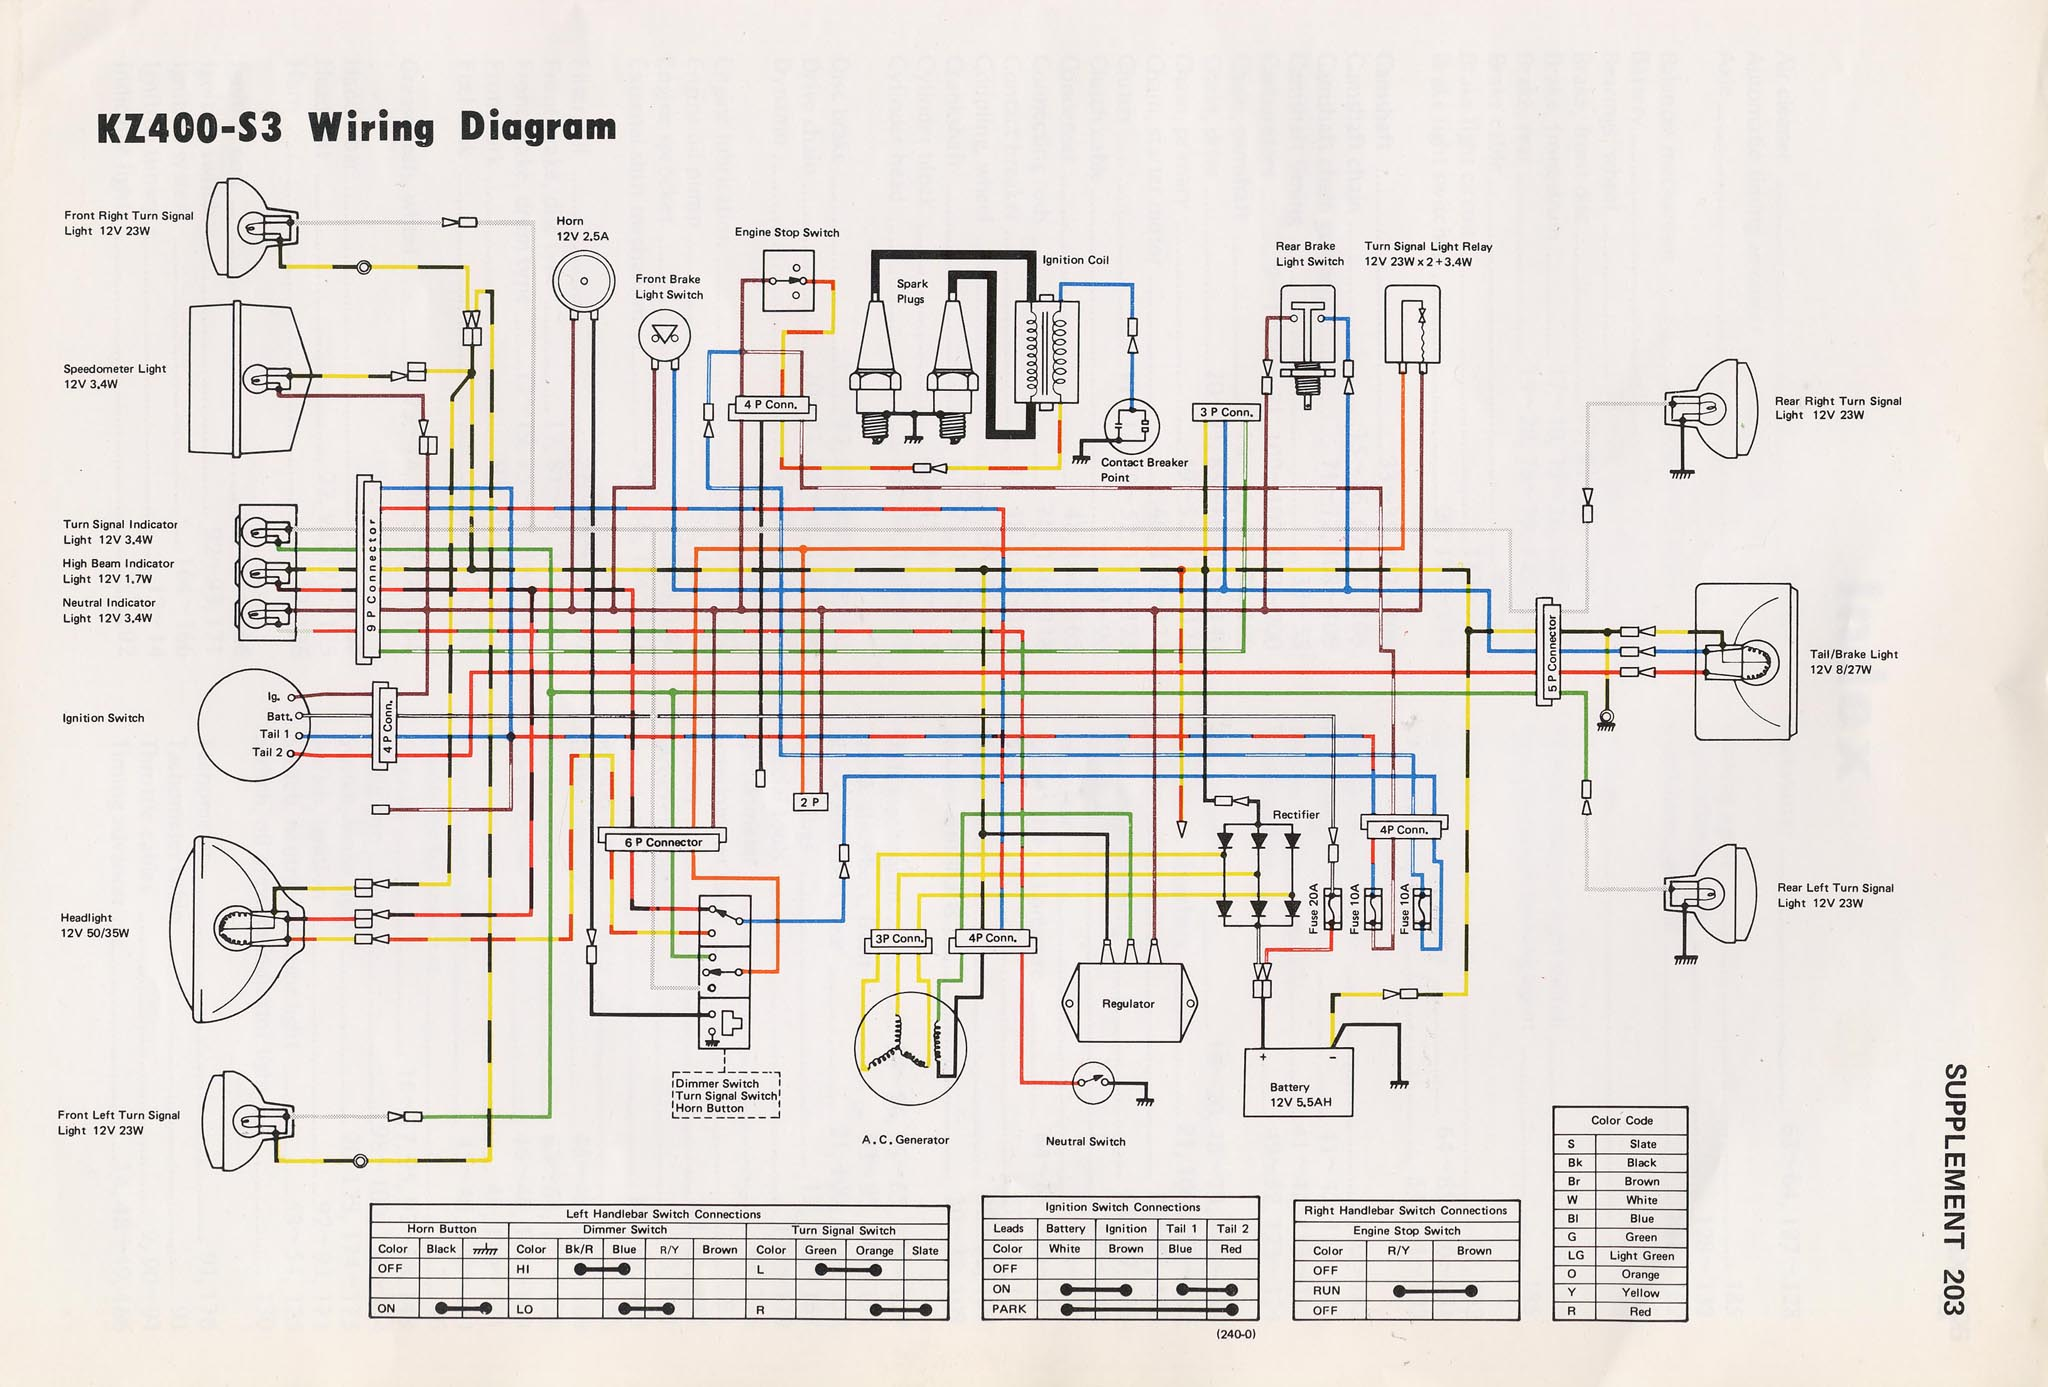 Kz440 Wiring Diagram from kz400.com